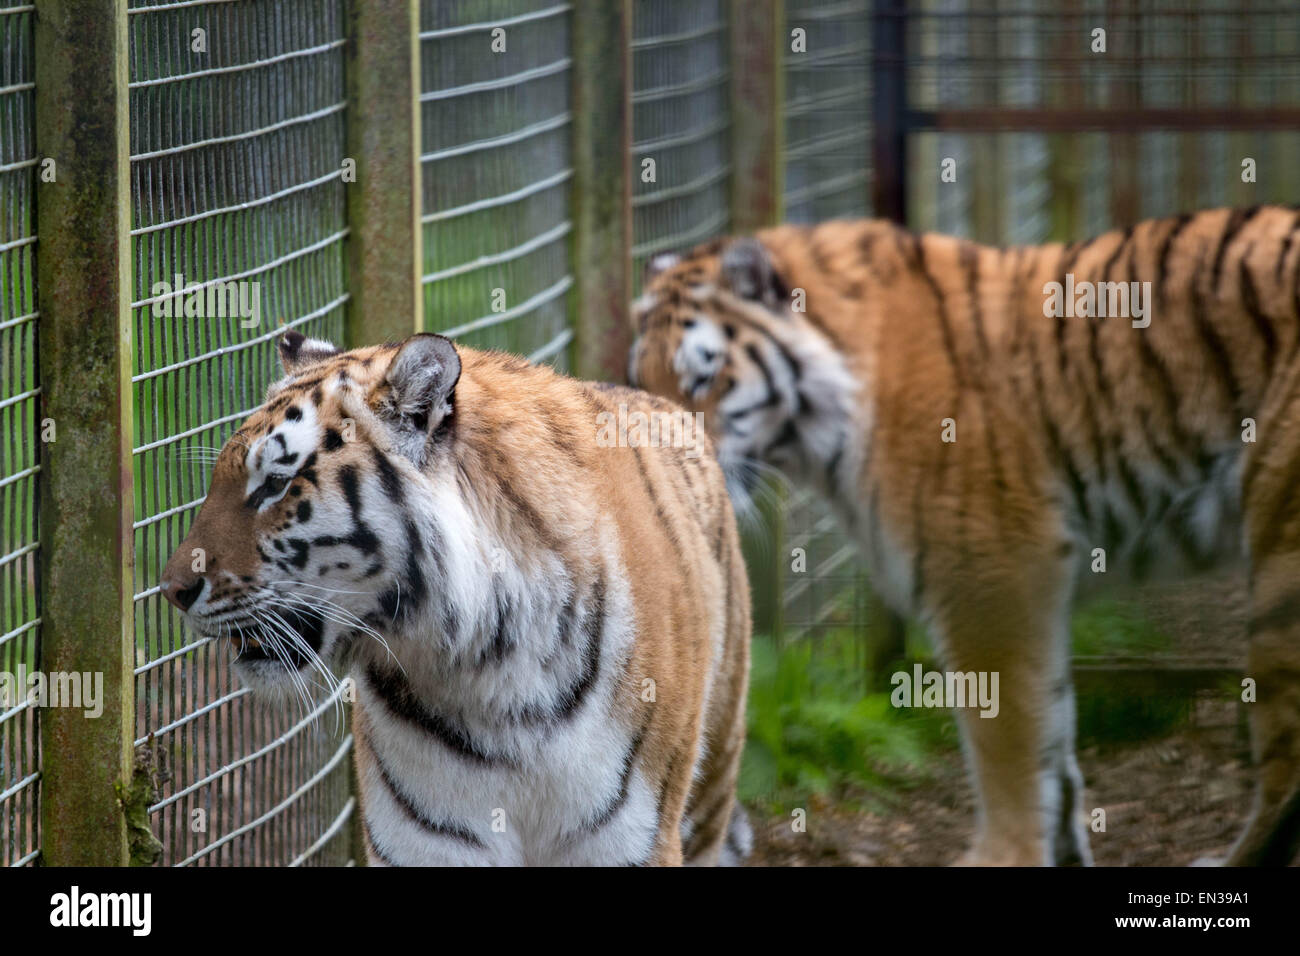 Port Lympne, Kent, UK. 25 apr 2015, Tigers wait eagerly as keepers hang meat in their enclosure Credit:  darren Stock Photo